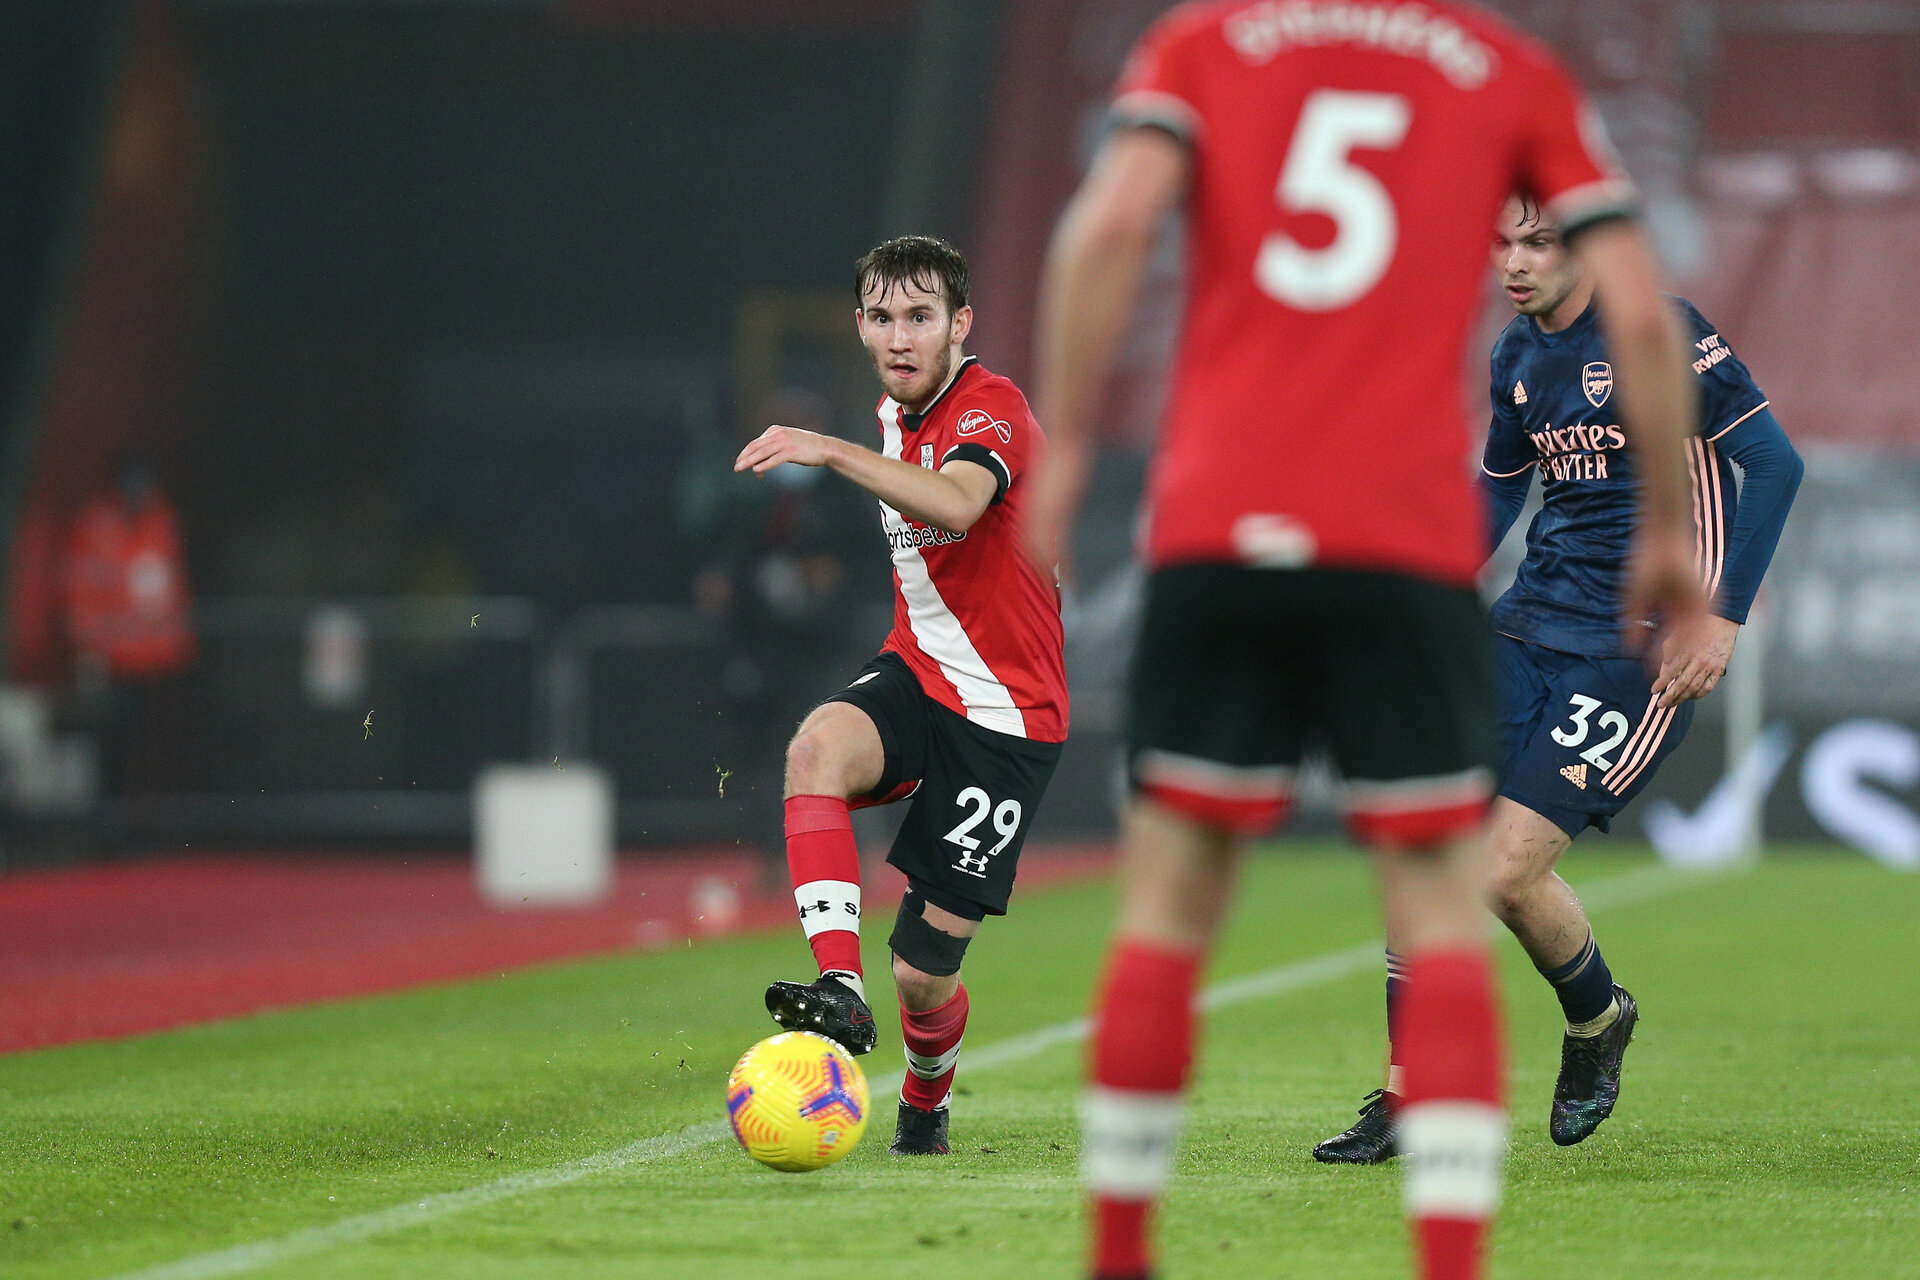 SOUTHAMPTON, ENGLAND - JANUARY 26: Jake Vokins of Southampton during the Premier League match between Southampton and Arsenal at St Mary's Stadium on January 26, 2021 in Southampton, England. Sporting stadiums around the UK remain under strict restrictions due to the Coronavirus Pandemic as Government social distancing laws prohibit fans inside venues resulting in games being played behind closed doors. (Photo by Matt Watson/Southampton FC via Getty Images)